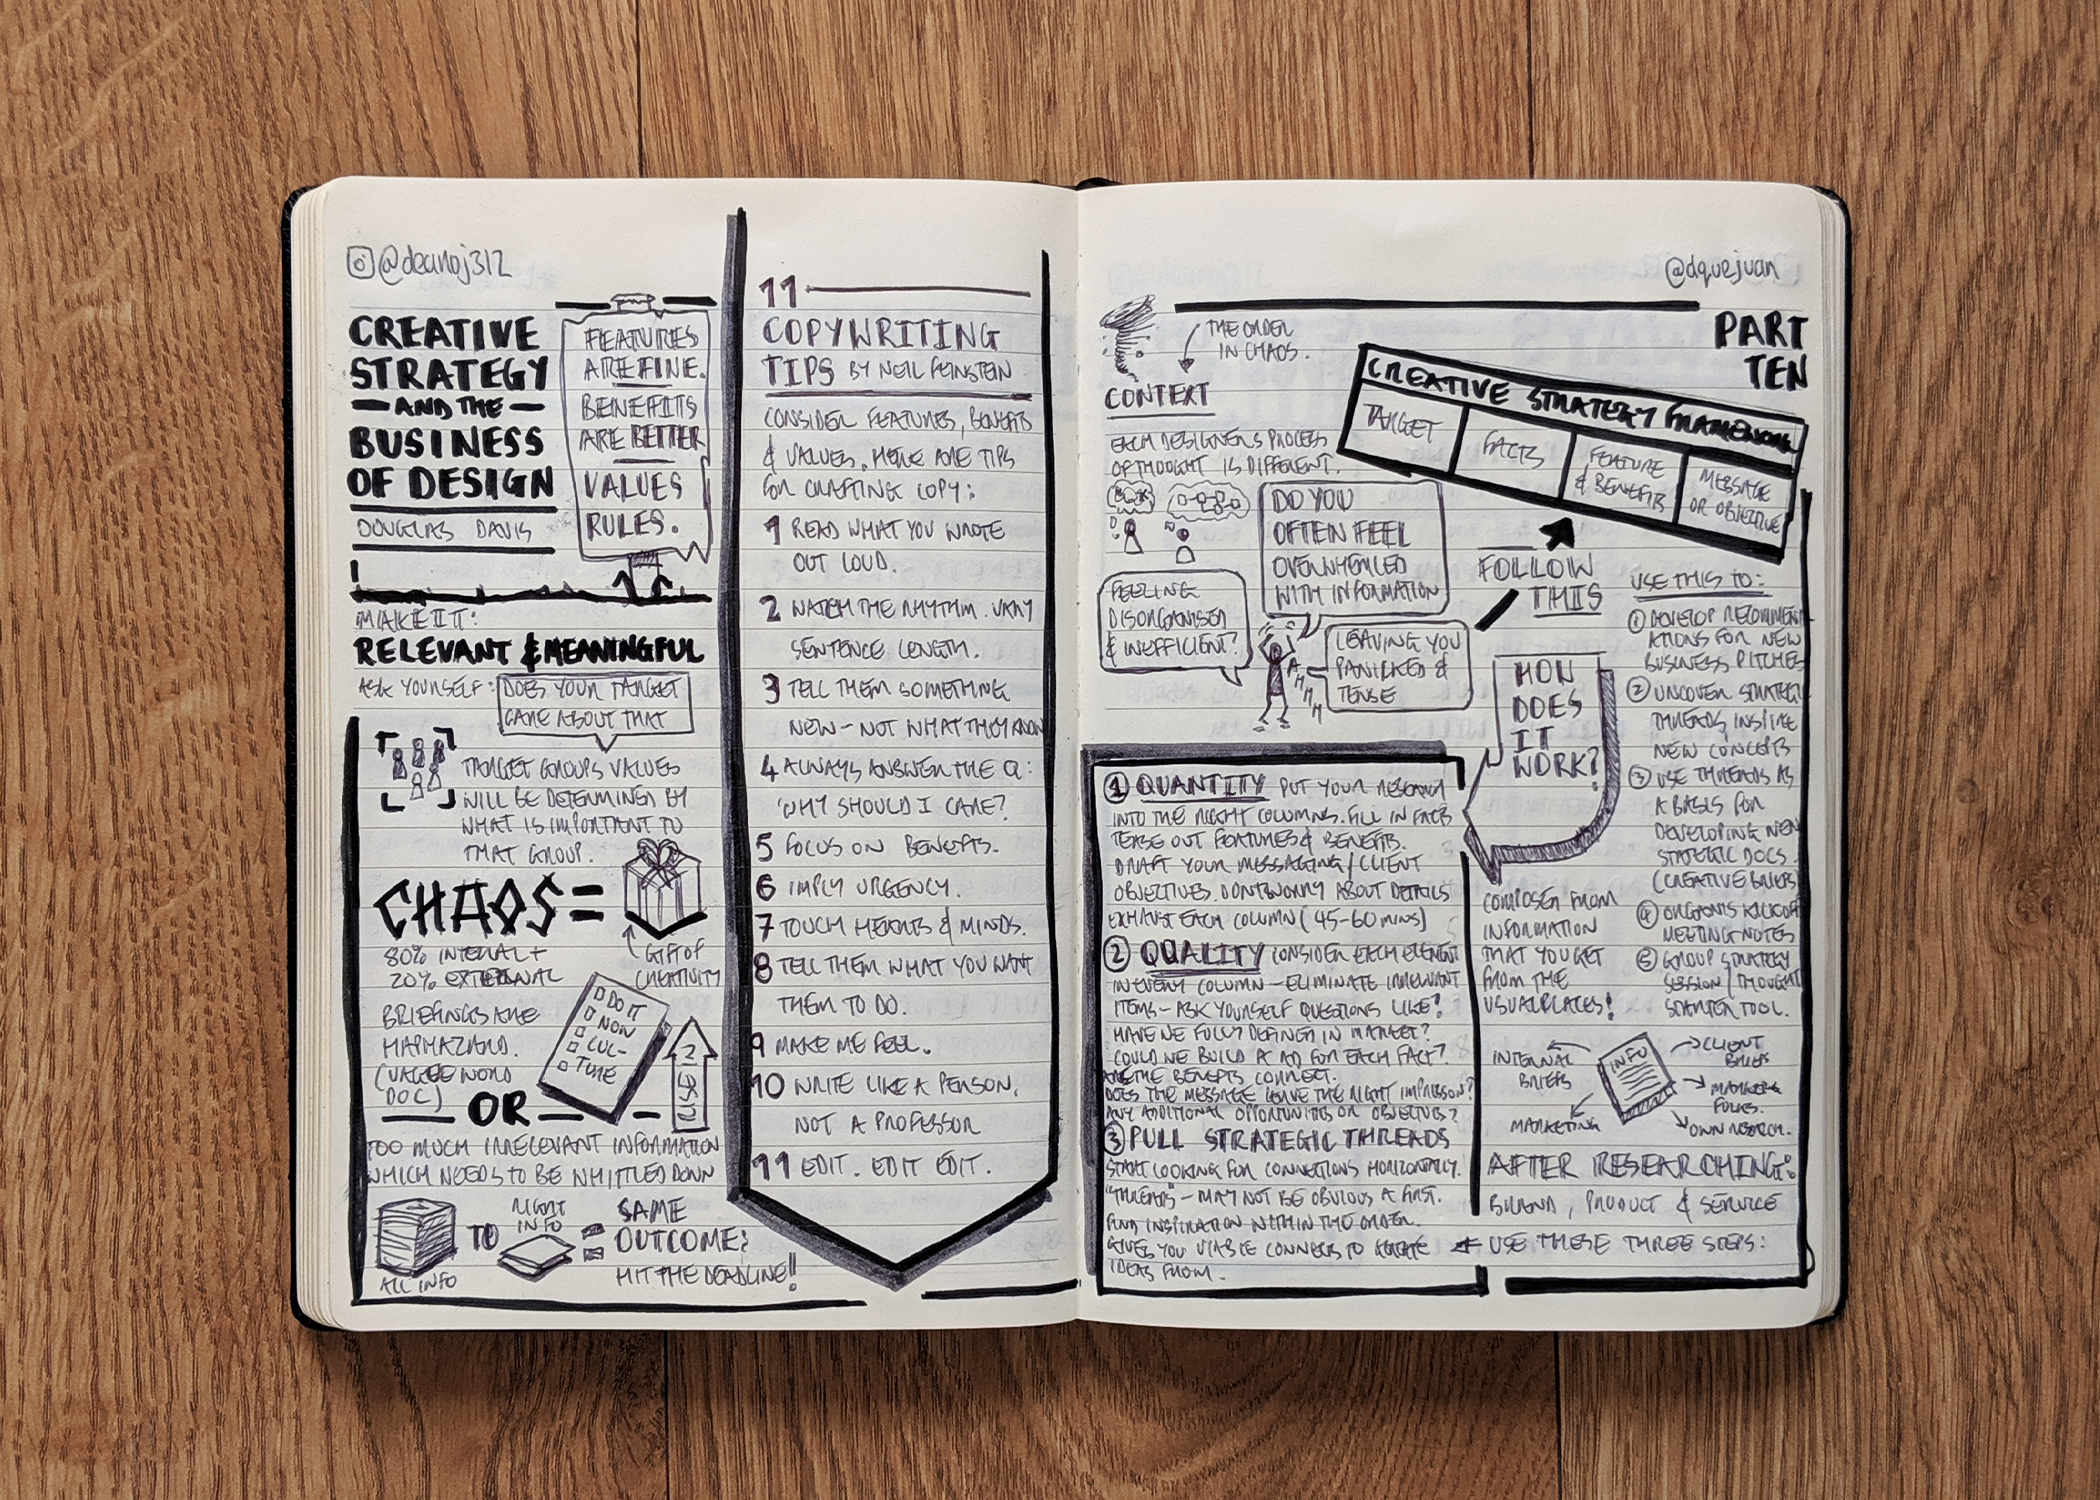 Creative-Strategy-And-The-Business-Of-Design-nudenotes-10.jpg